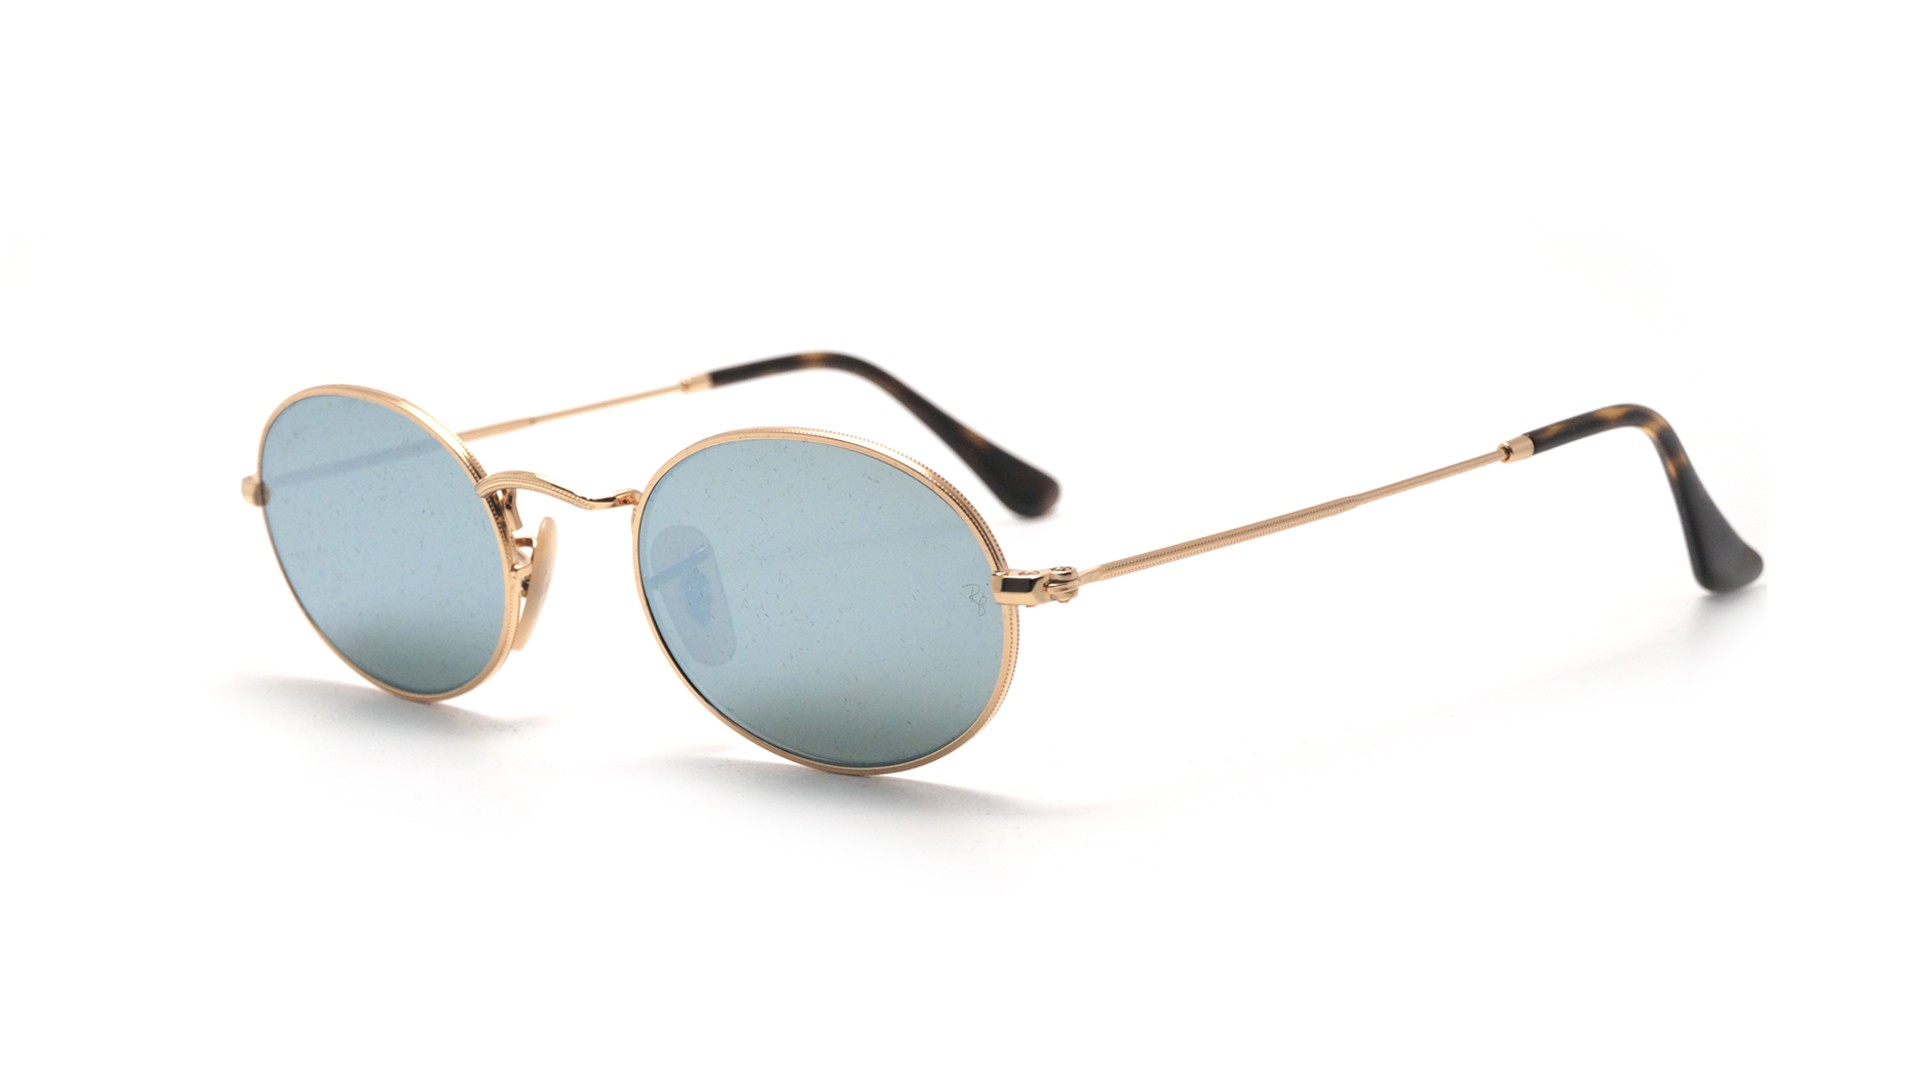 7af6936976 Sunglasses Ray-Ban RB3547N 001 30 48-21 Gold Small Flash